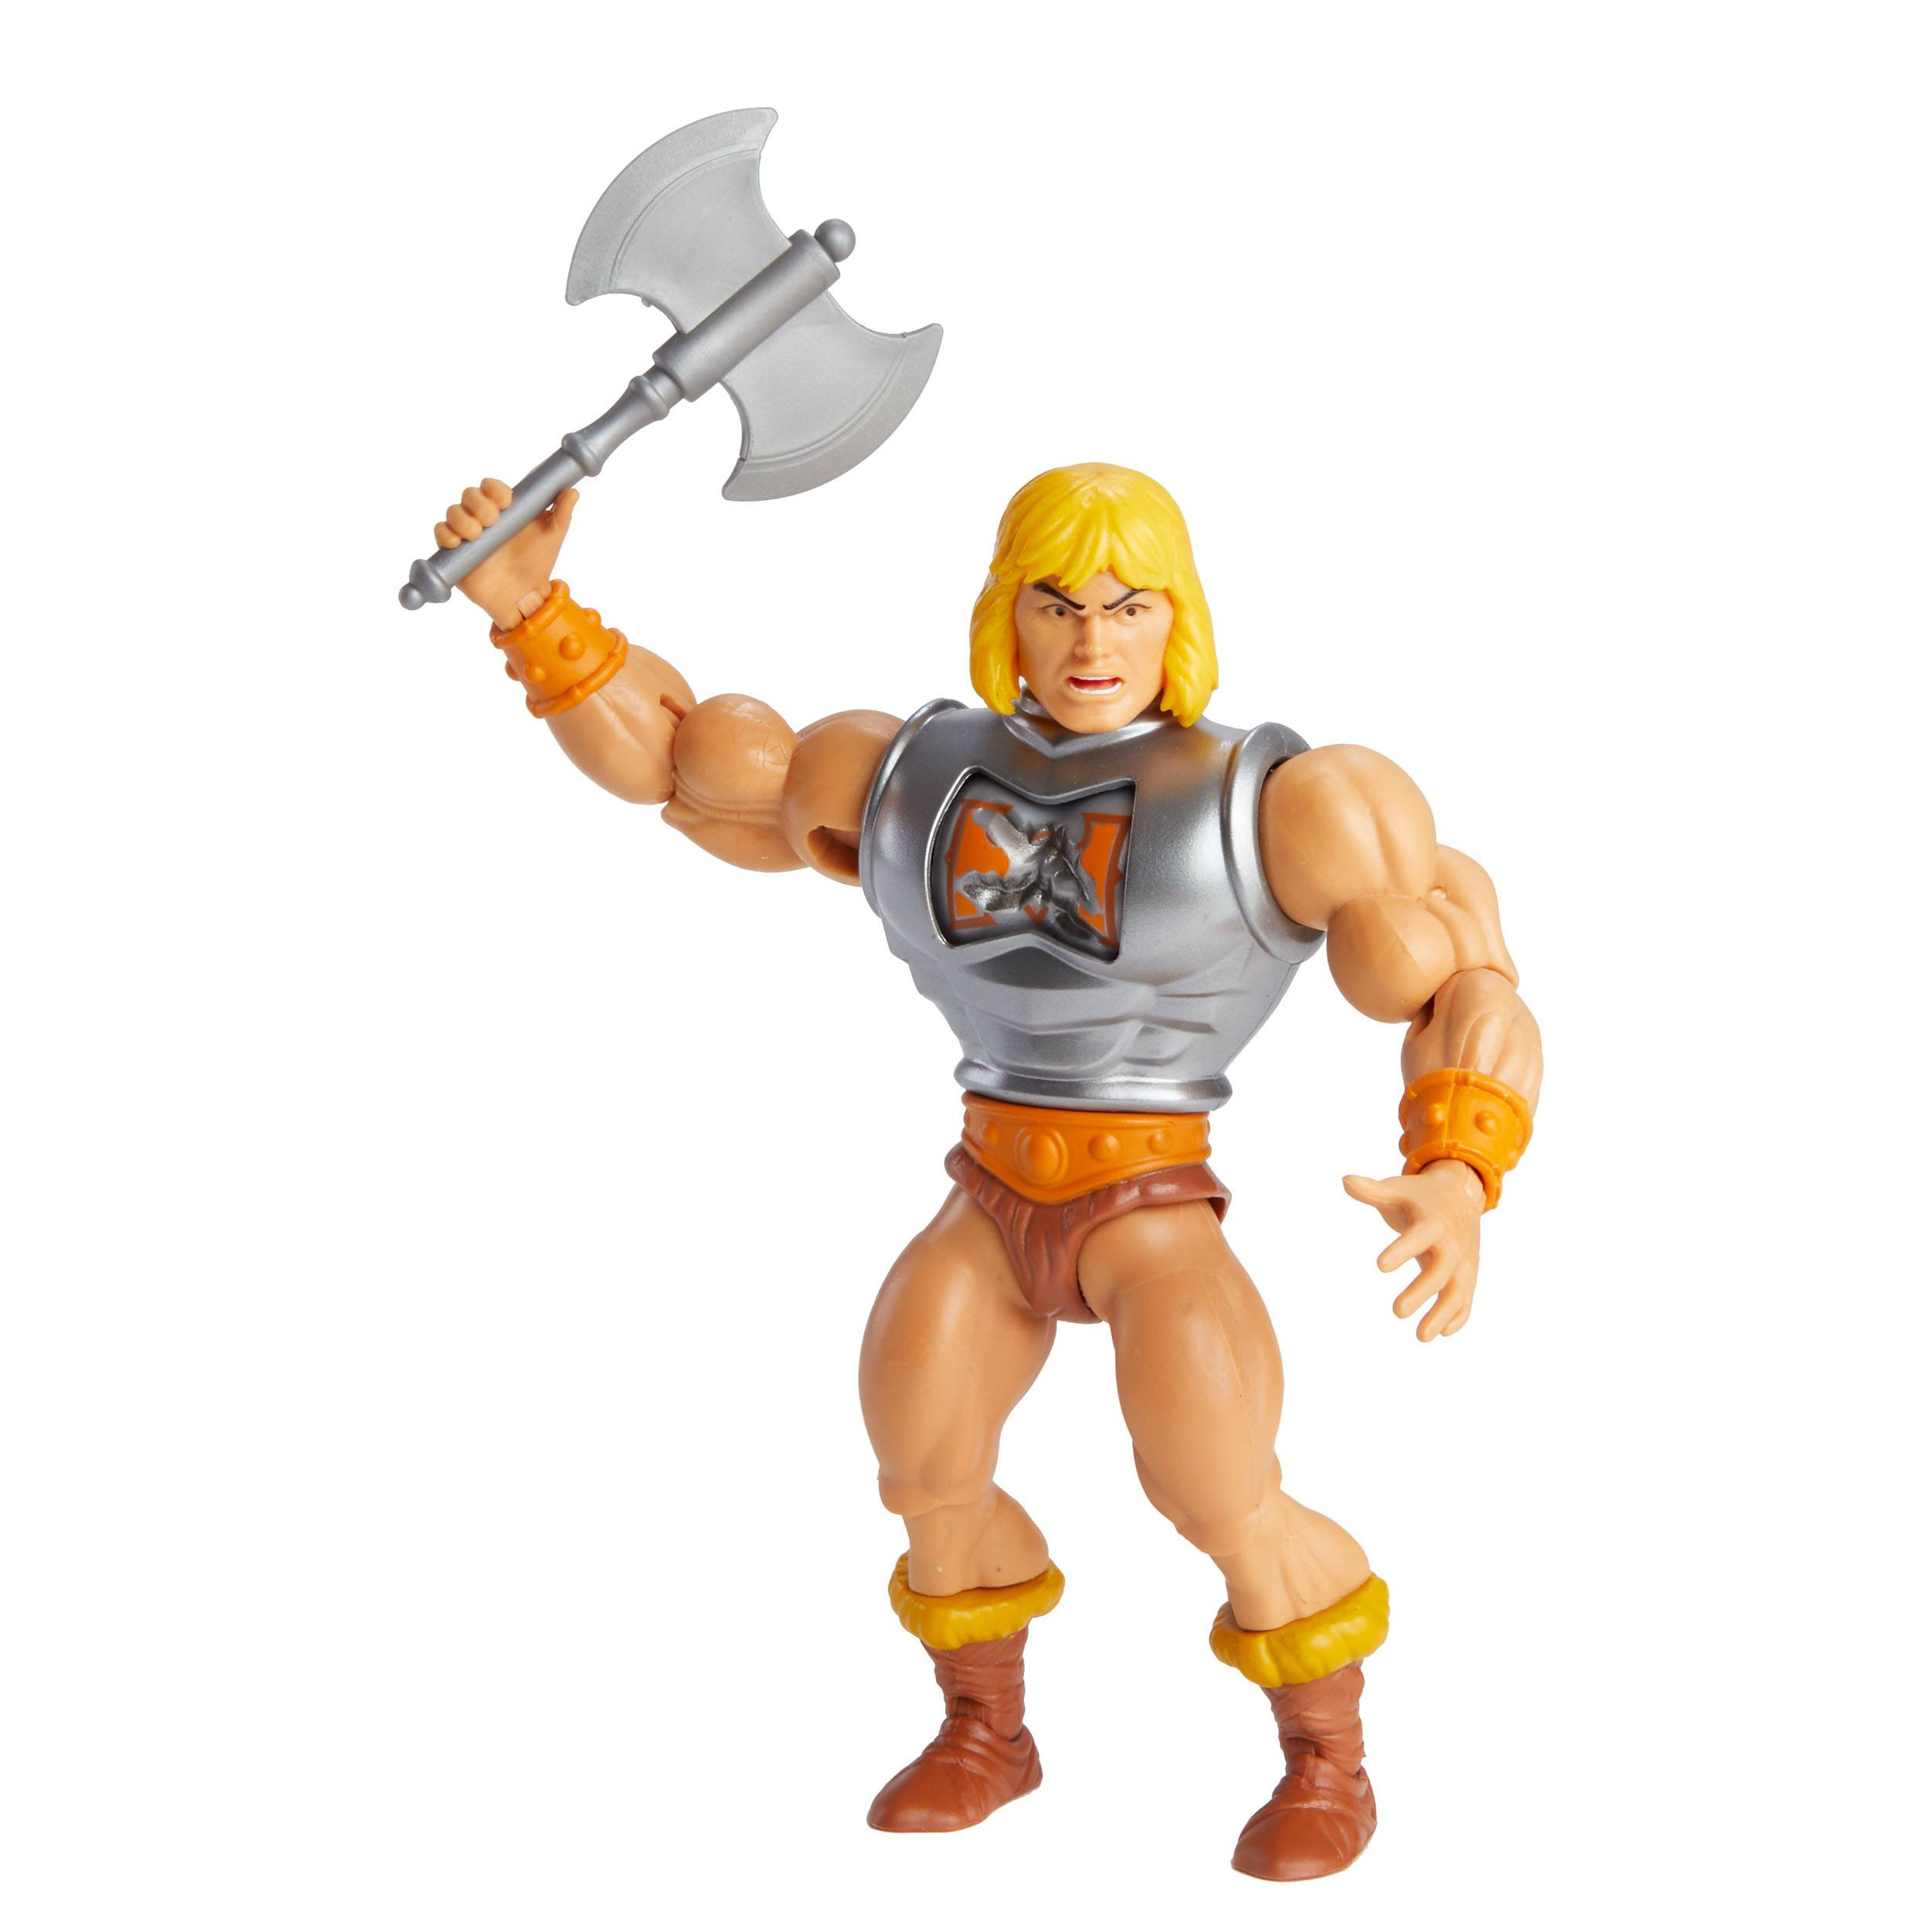 Masters of the Universe Deluxe Actionfigur 2021 He-Man 14 cm MATTGVL76 887961929652